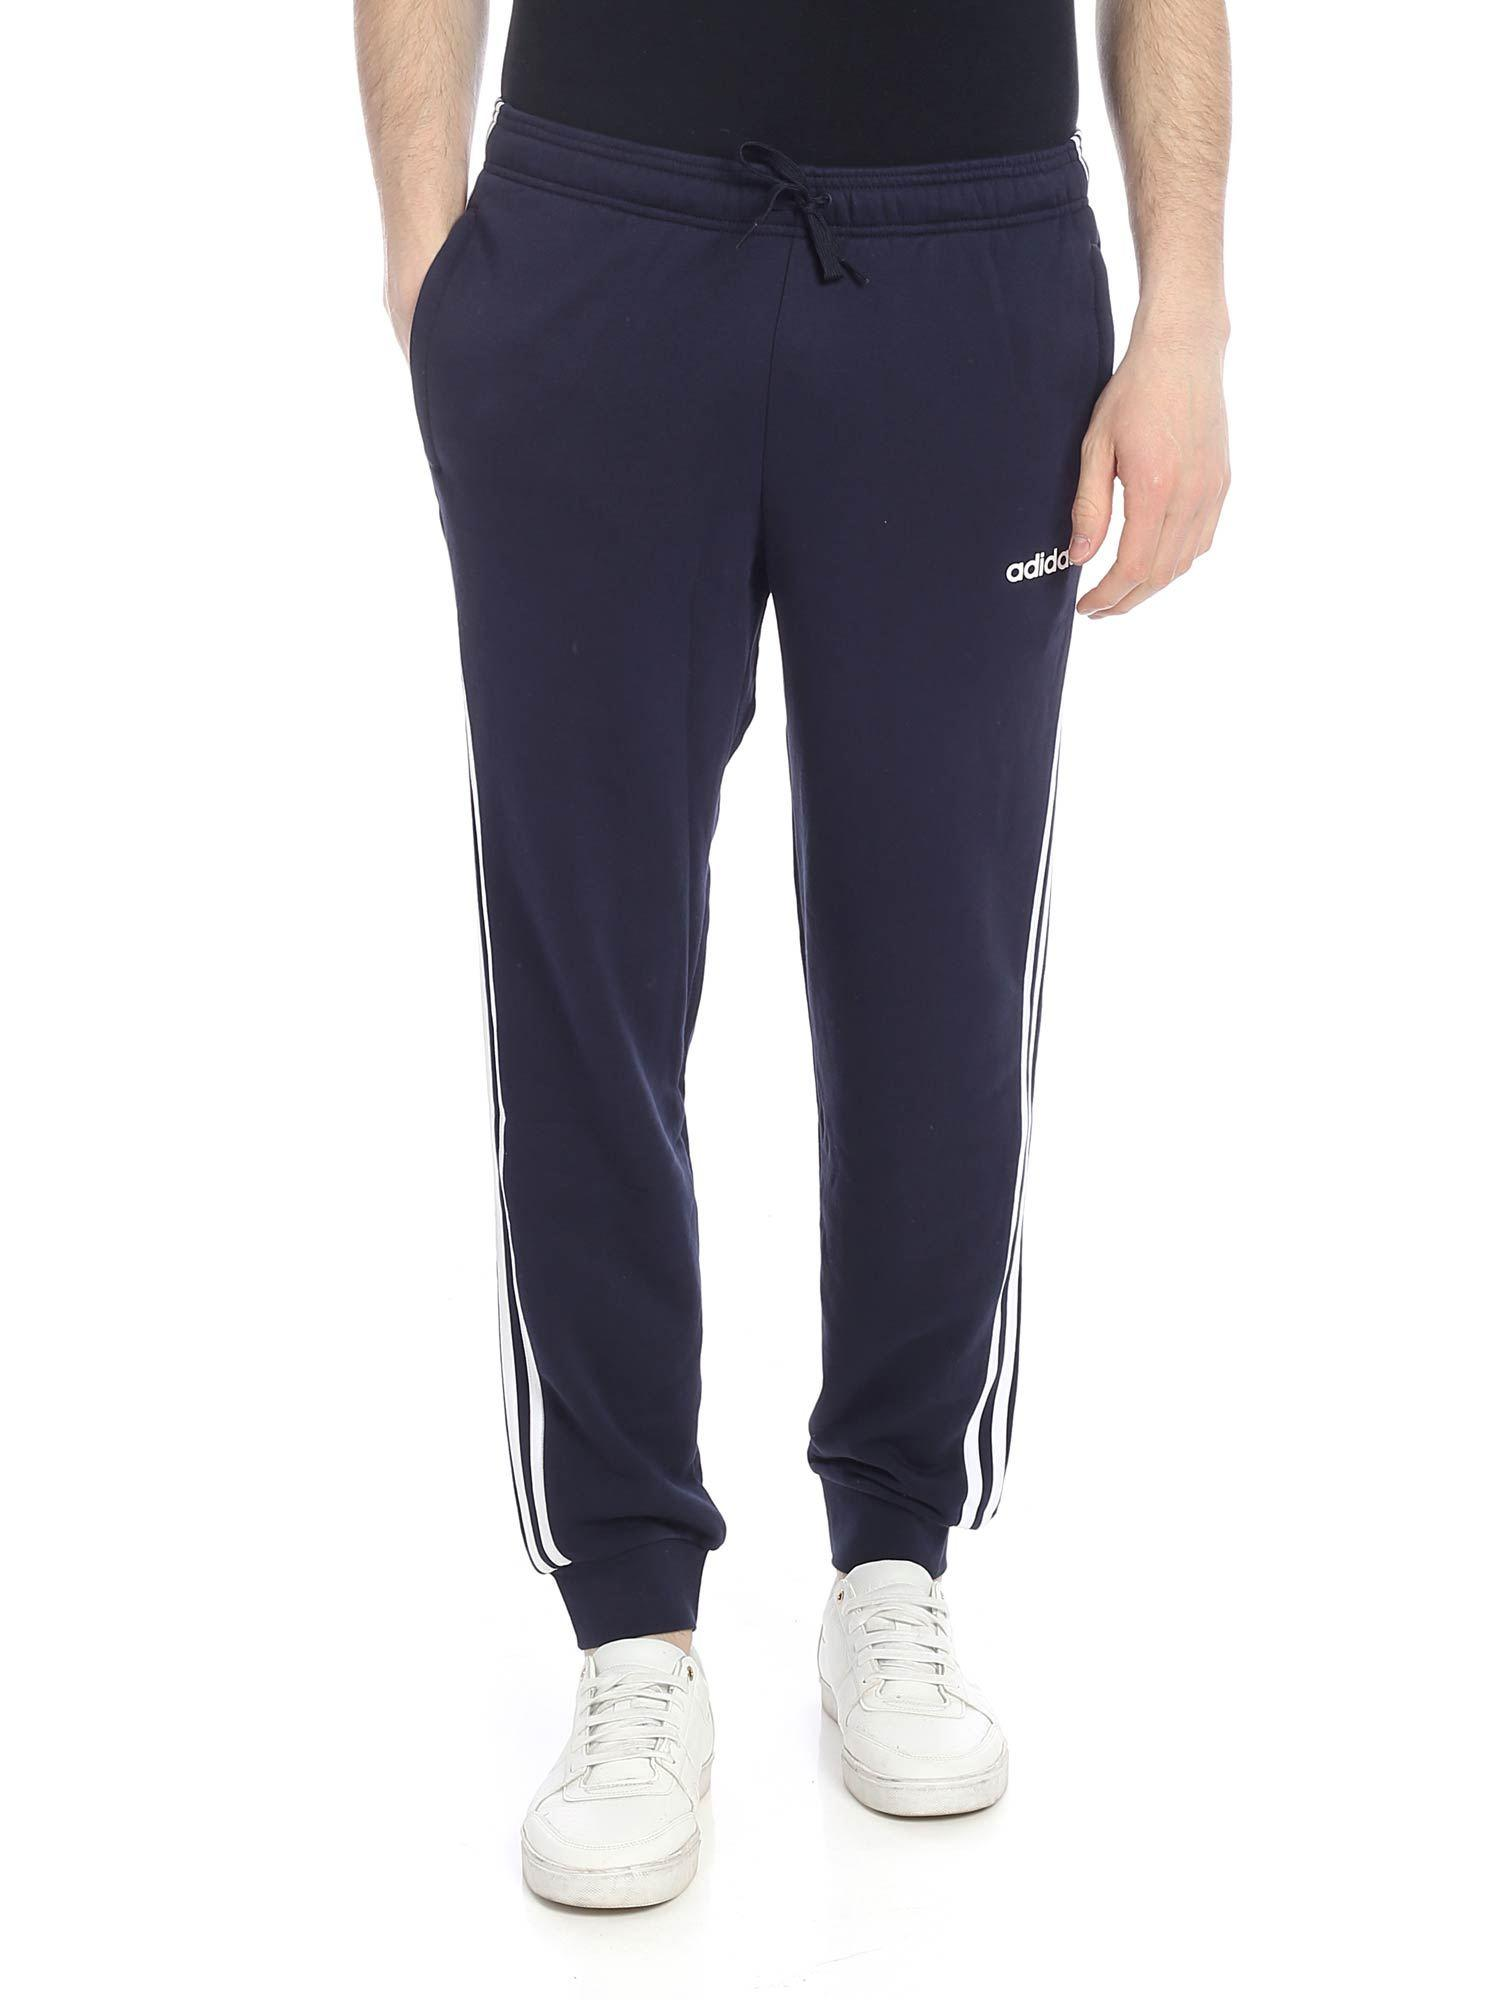 bde1e6258 Lyst - adidas Essentials 3-stripes Trousers In Blue in Blue for Men